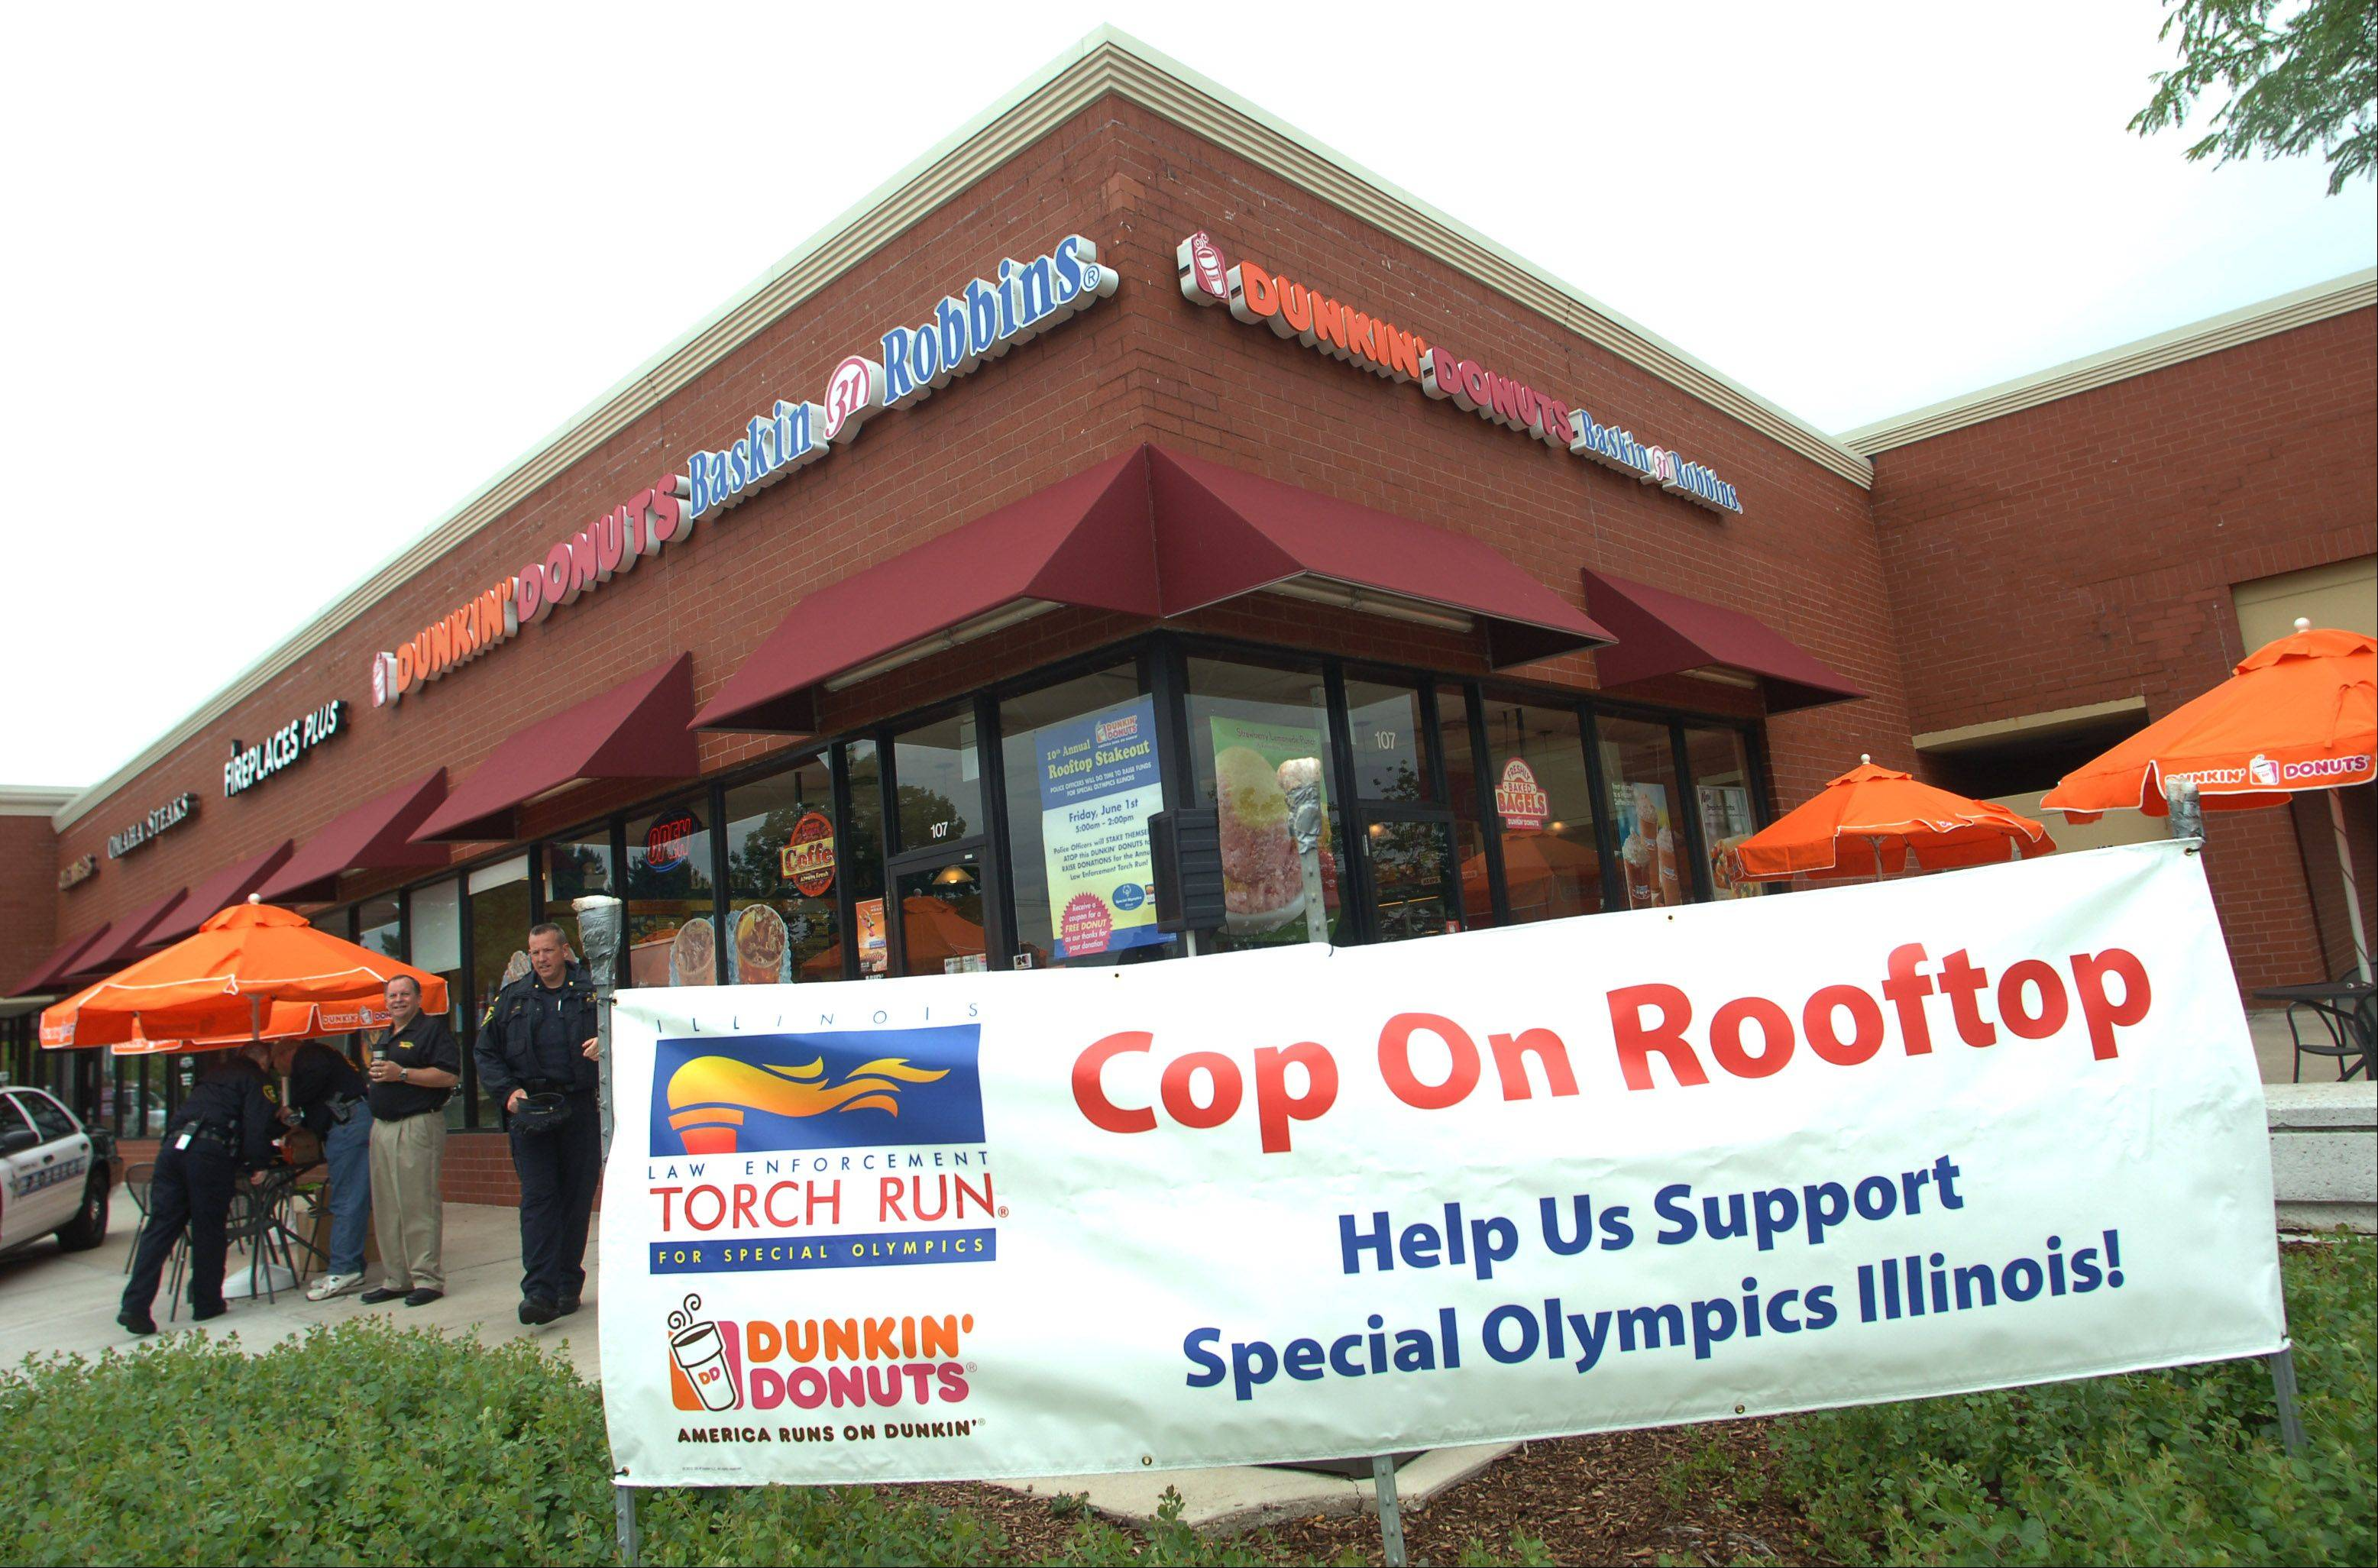 The Vernon Hills Dunkin' Donuts store at Route 60 and Milwaukee Avenue will be the spot again this year for the Special Olympics fundraiser.